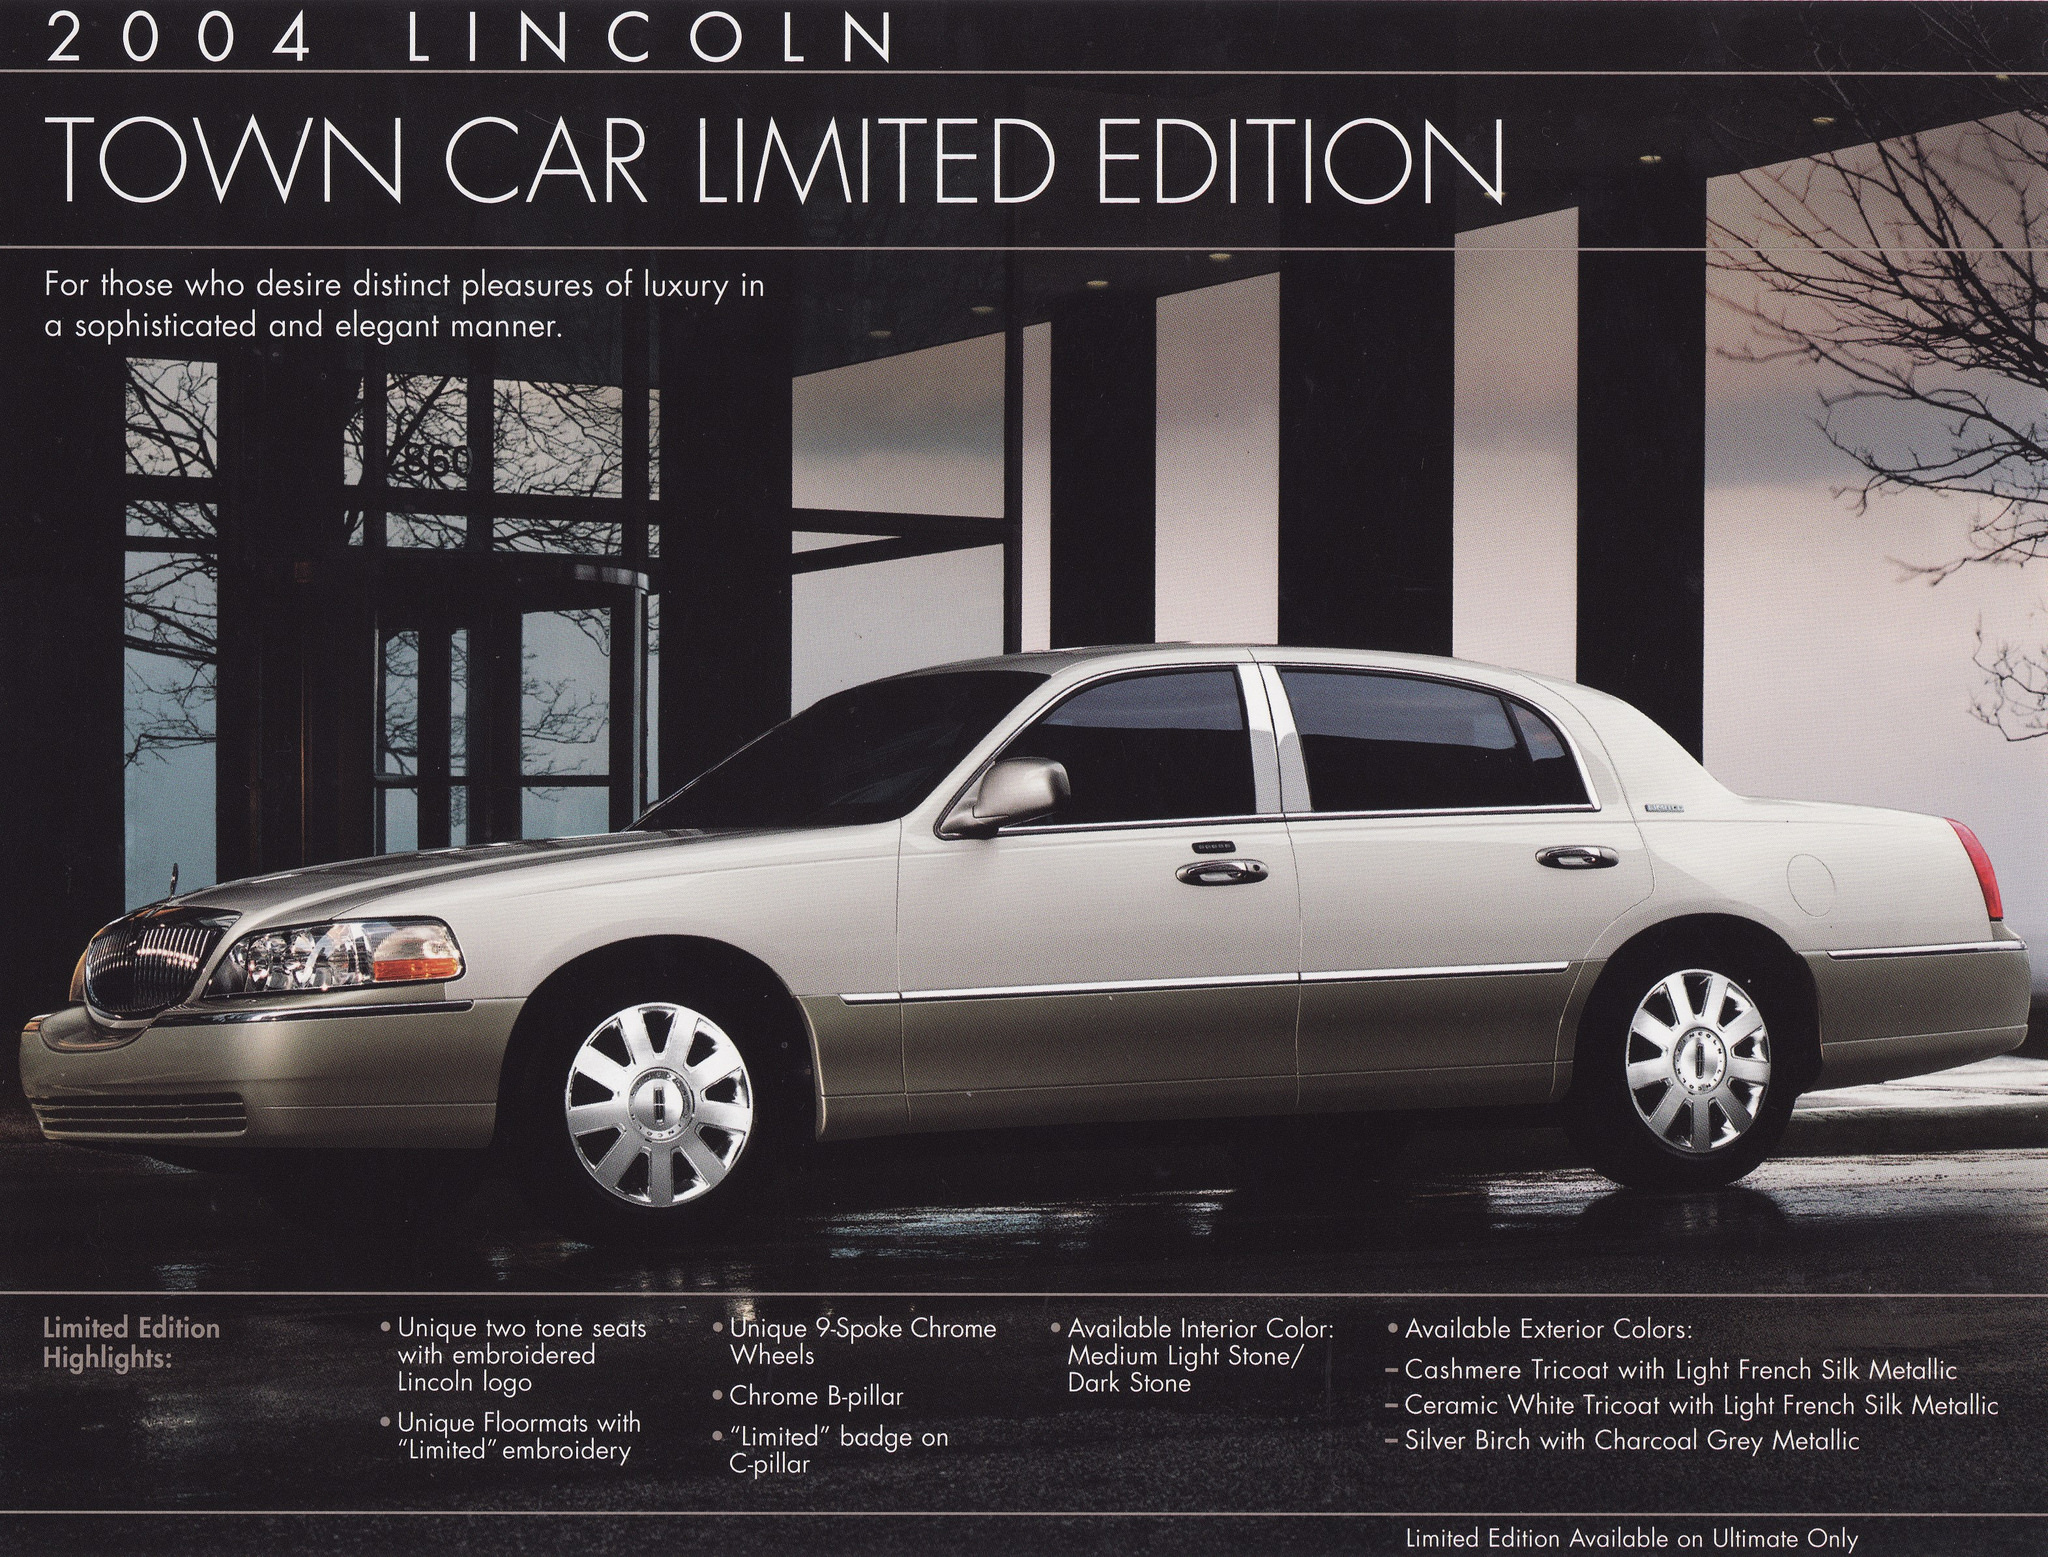 2004 Lincoln Town Car Limited Edition Brochure - USA